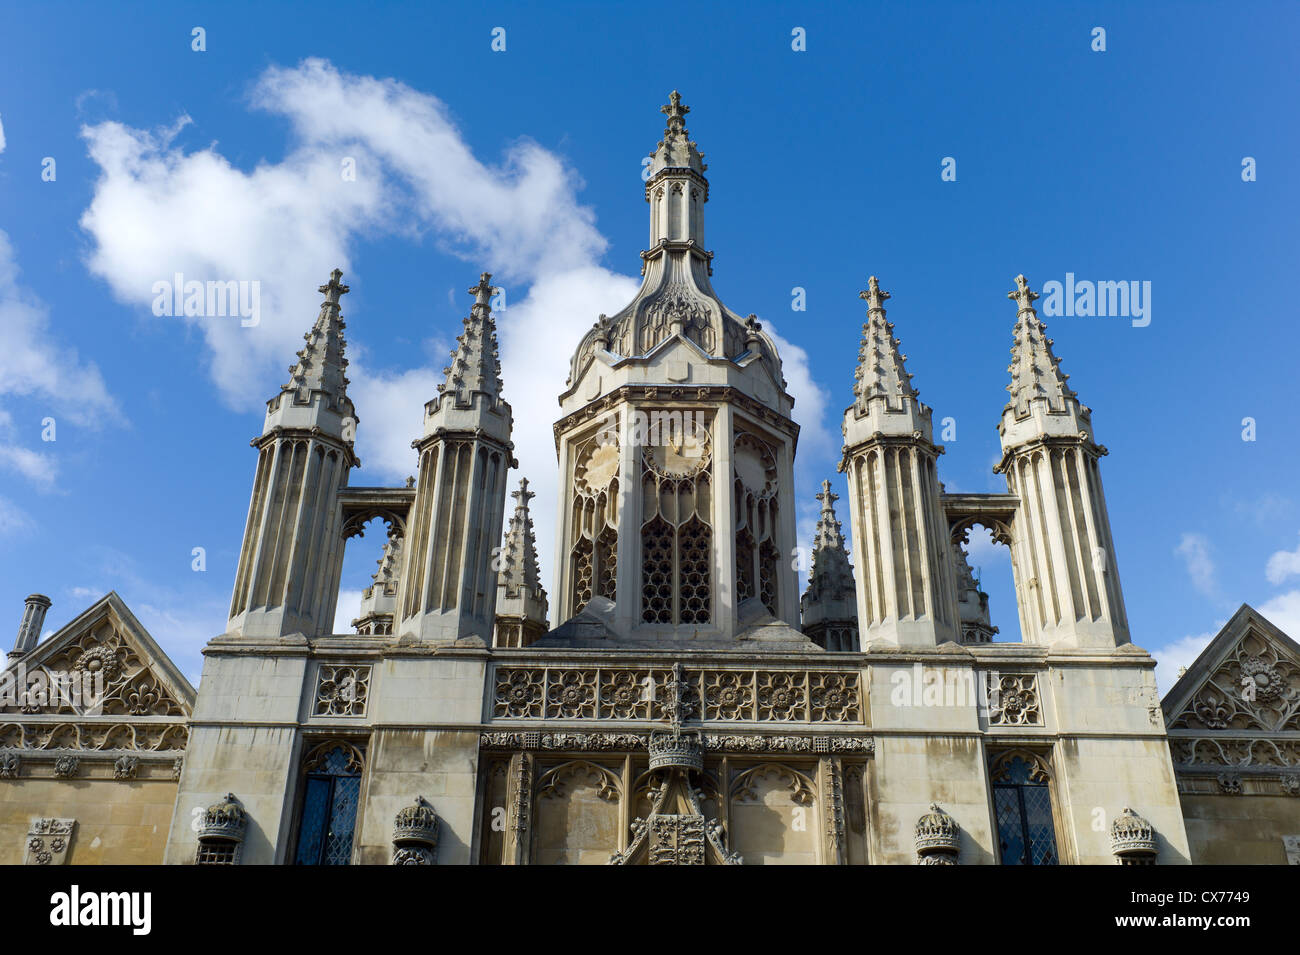 King's College Cambridge University - Stock Image